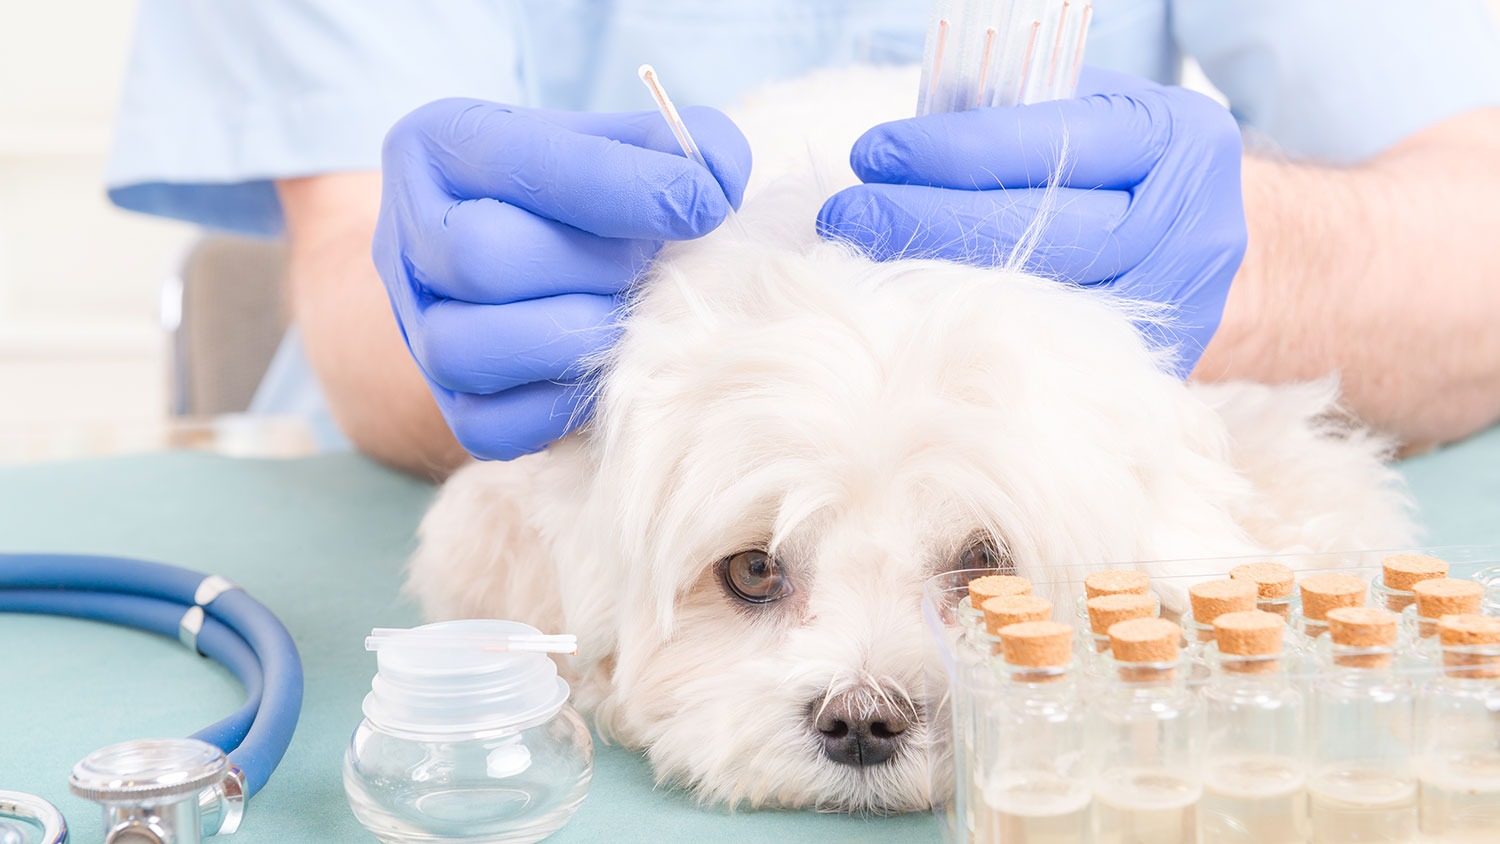 Can Pet Acupuncture Help?